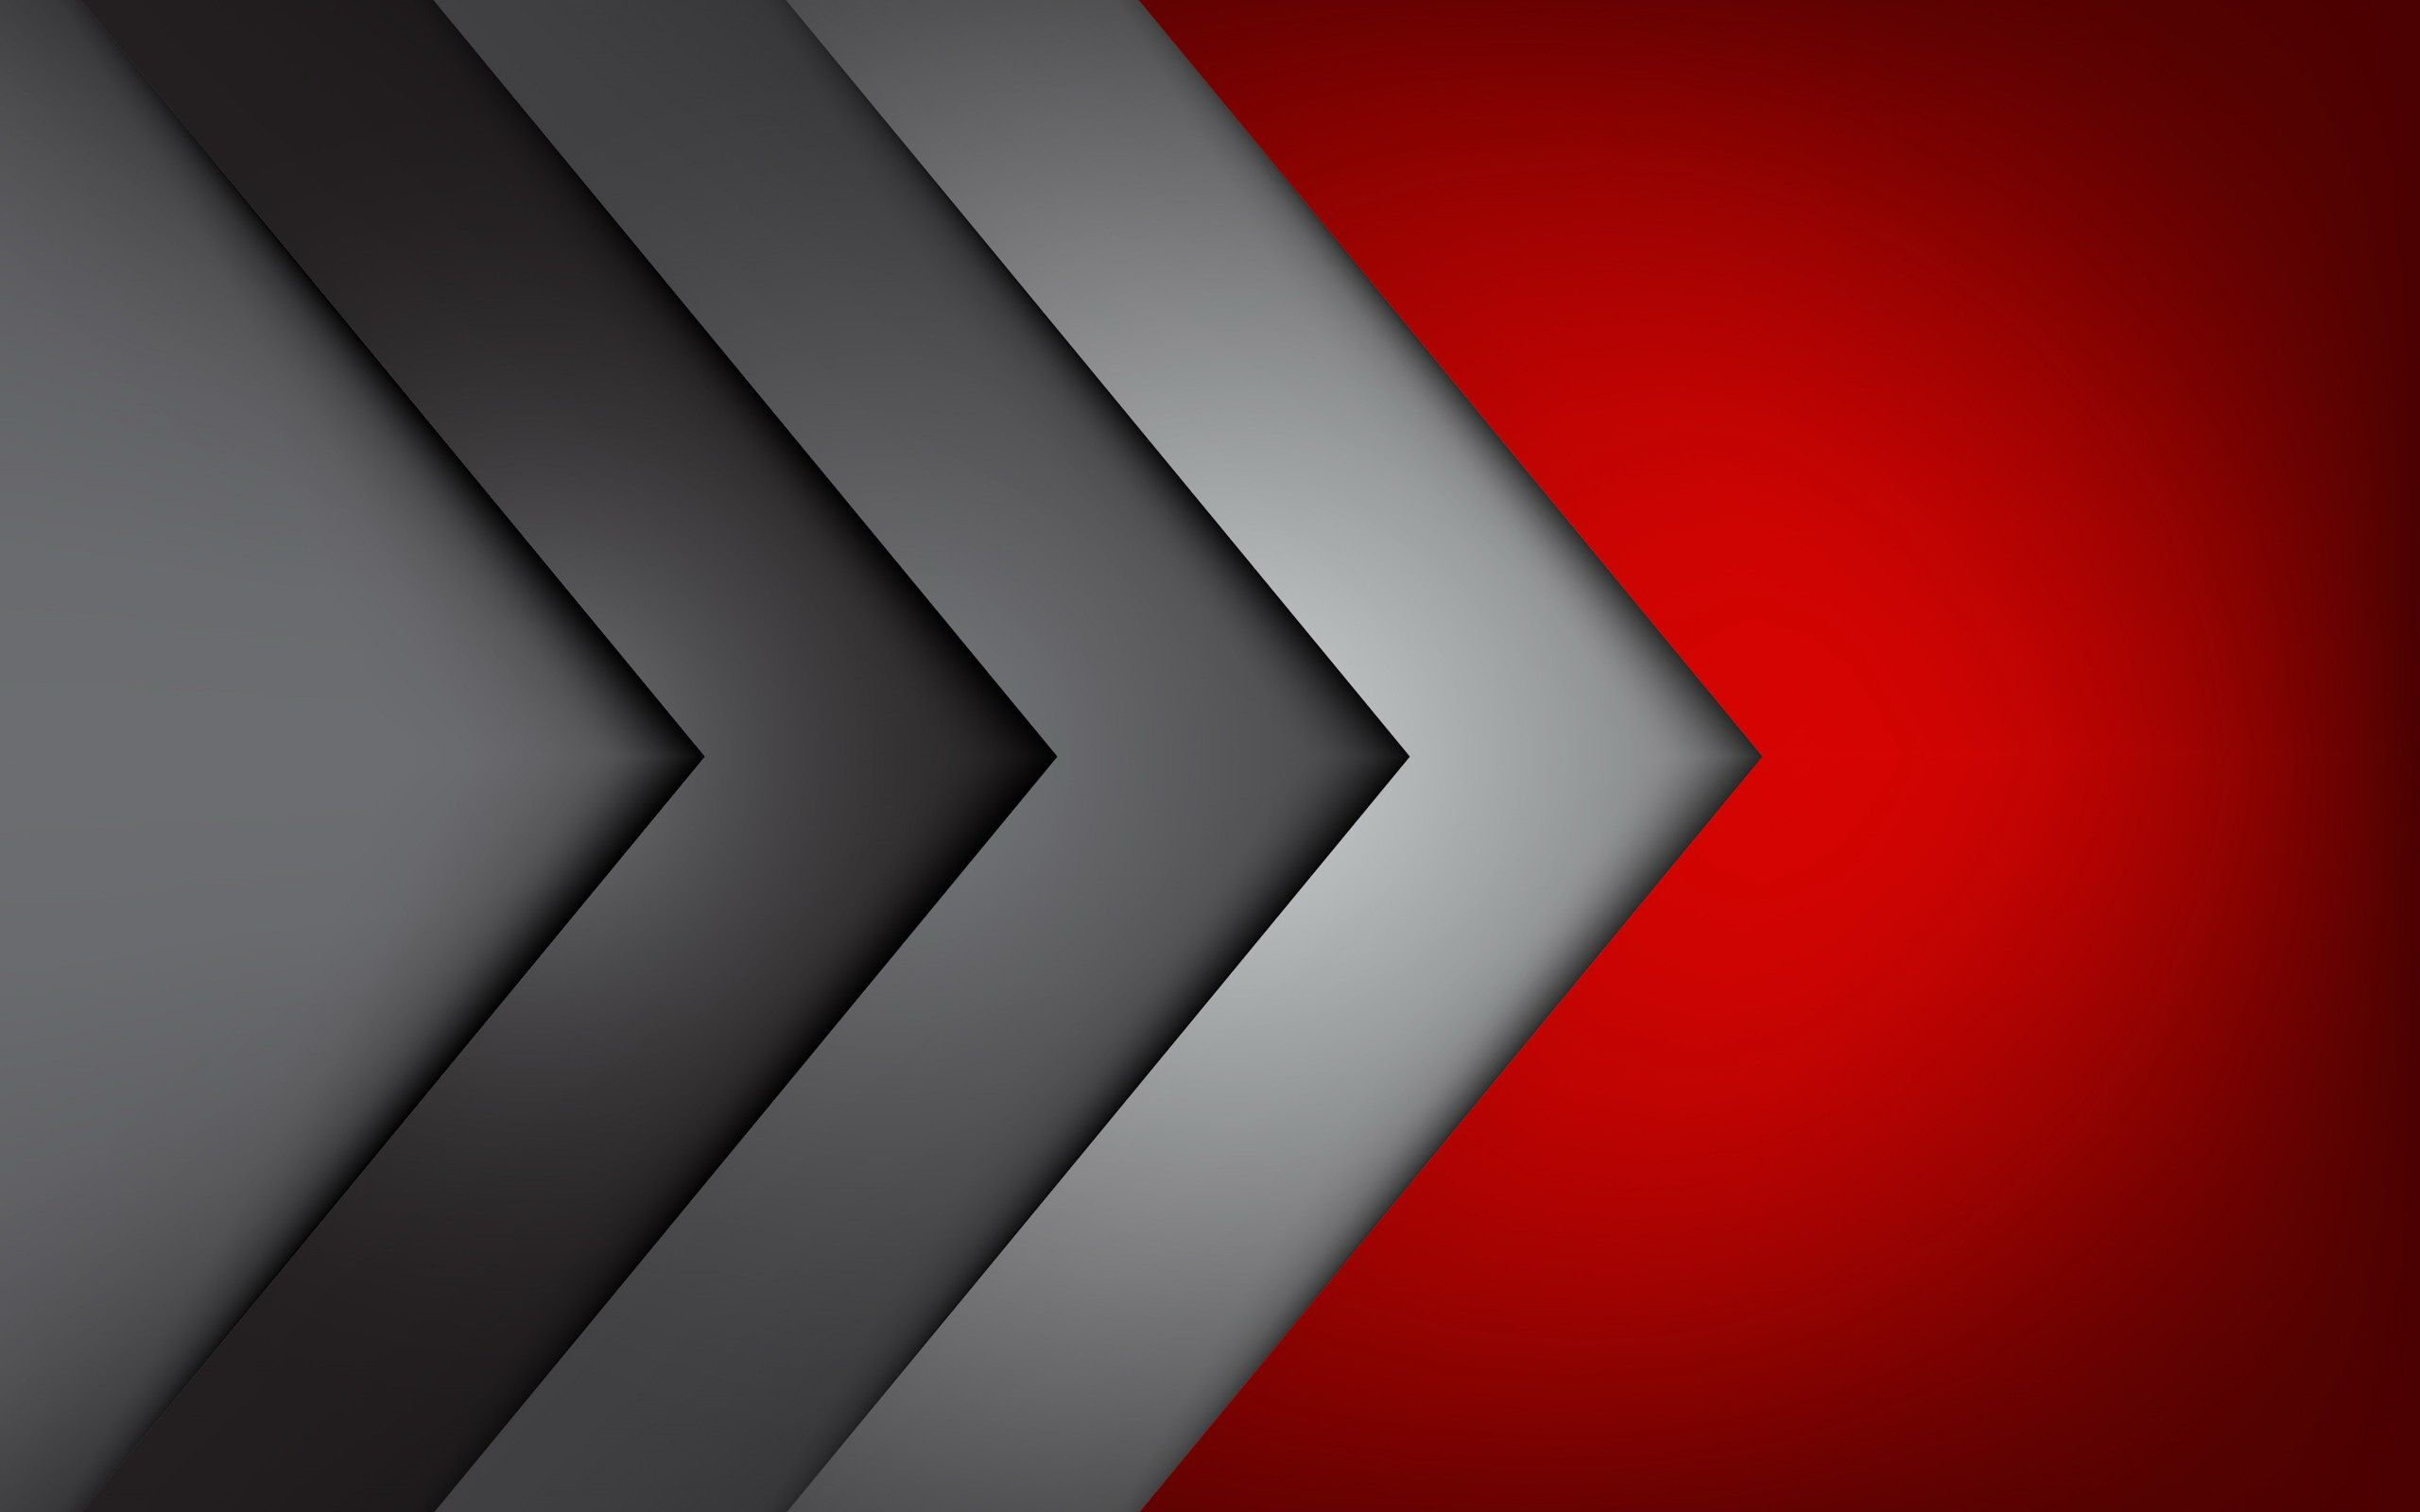 Red Black Gray Wallpapers Top Free Red Black Gray Backgrounds